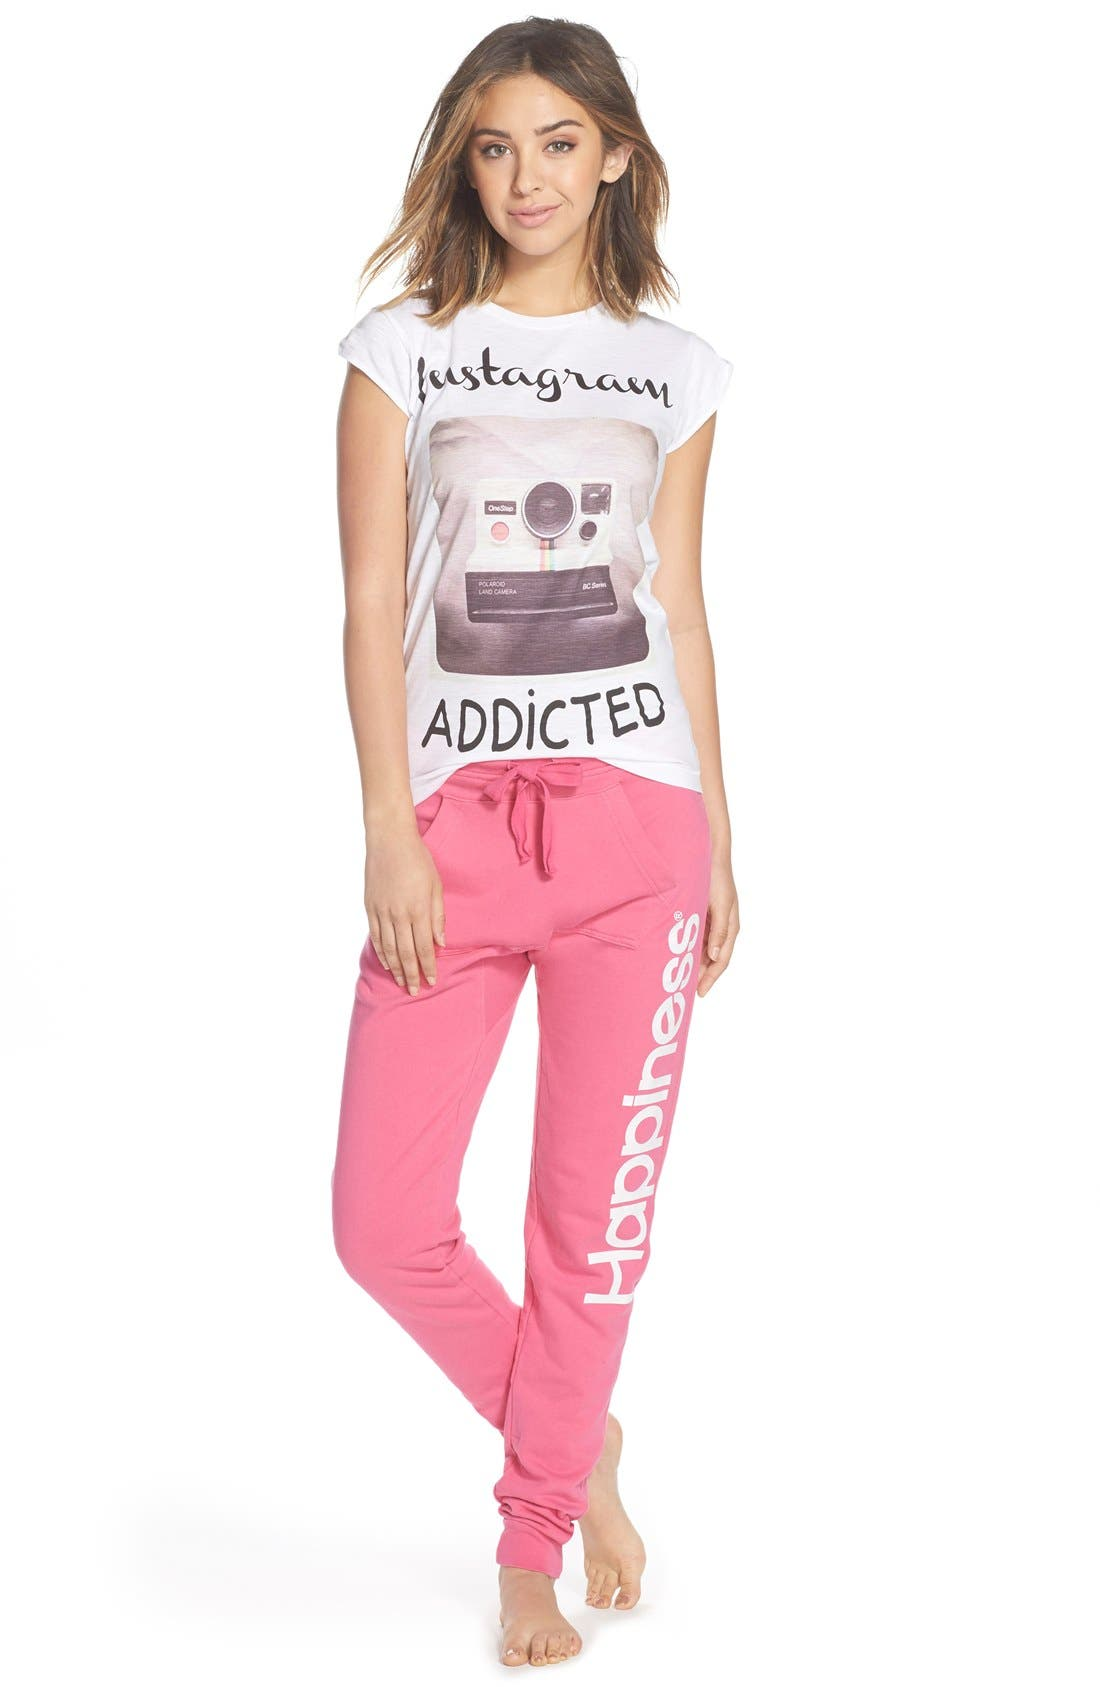 Alternate Image 3  - Happiness® 'Instagram Addicted' Graphic Tee